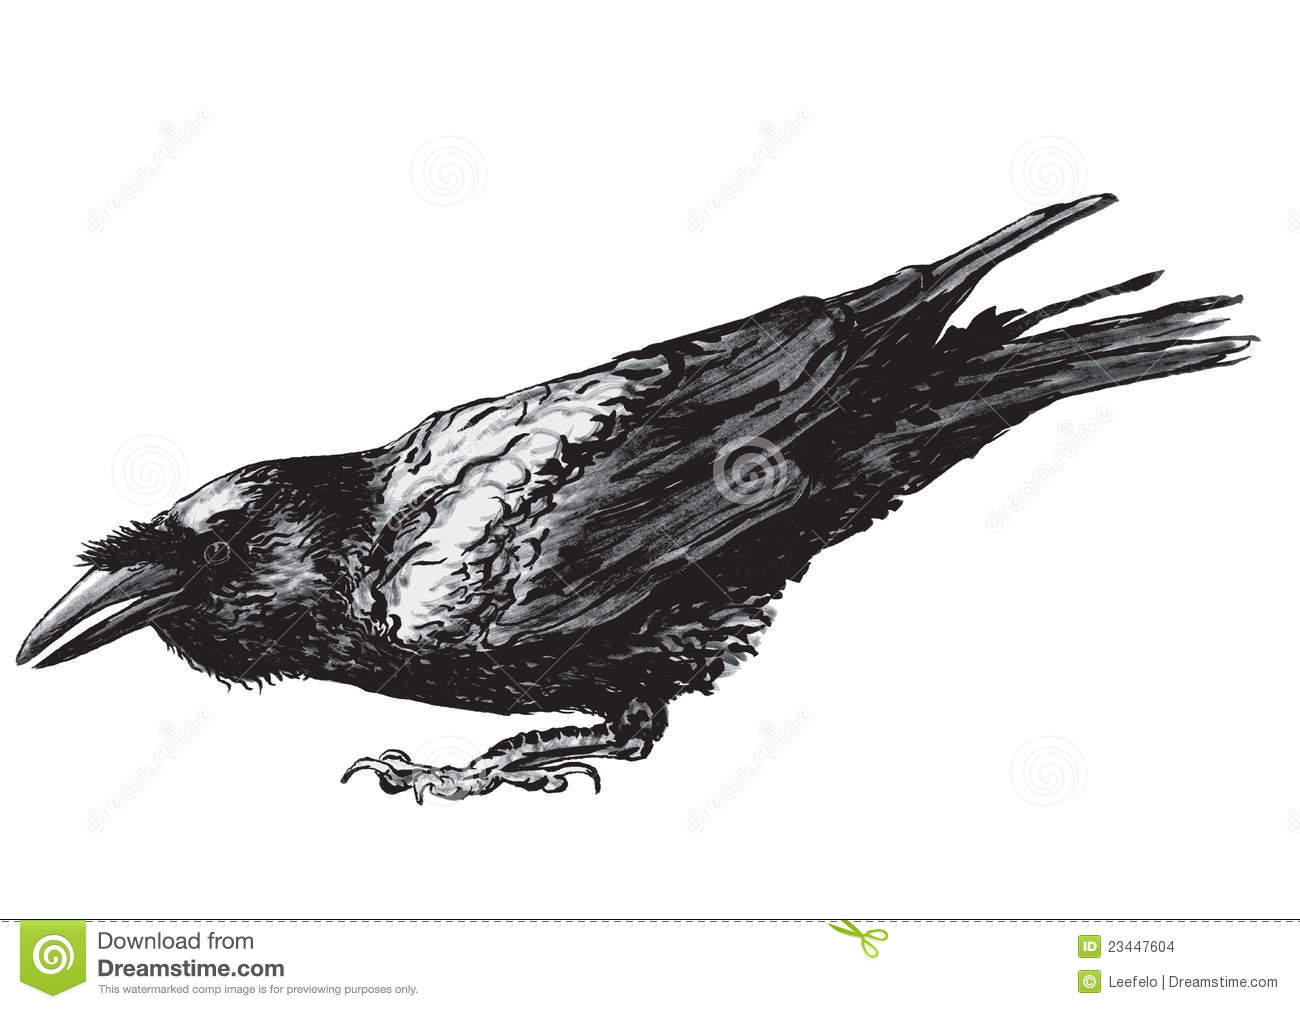 Stock Images Crouching Raven Image23447604 besides Good Governance together with Programs moreover Christmas Present Clip Art Black White 2 furthermore Imperial War Museum North. on open concept